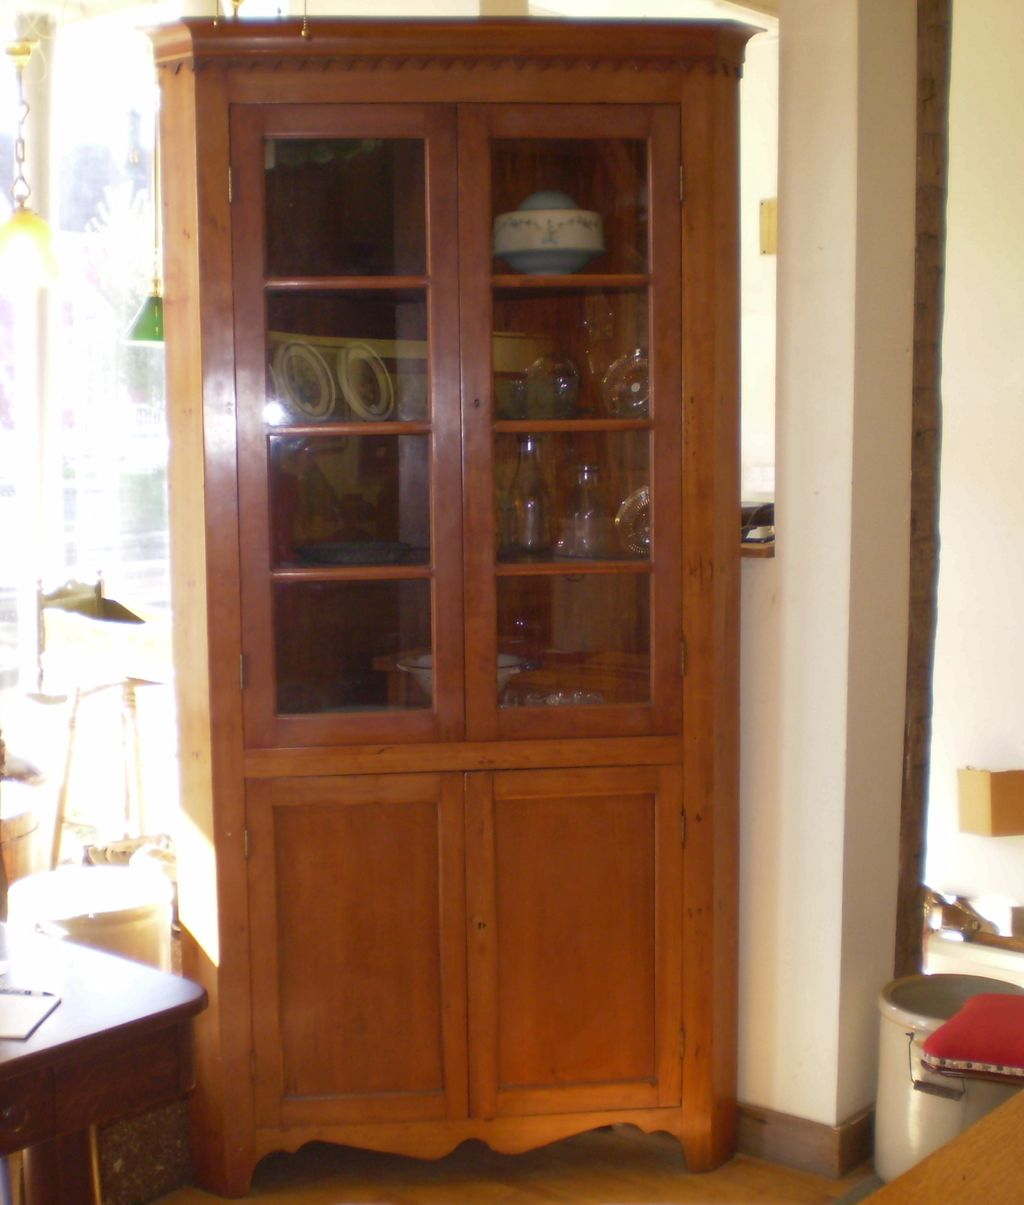 Kitchens With Glass Cabinet Doors: Vintage Cup: NEW 680 VINTAGE GLASS CABINETS